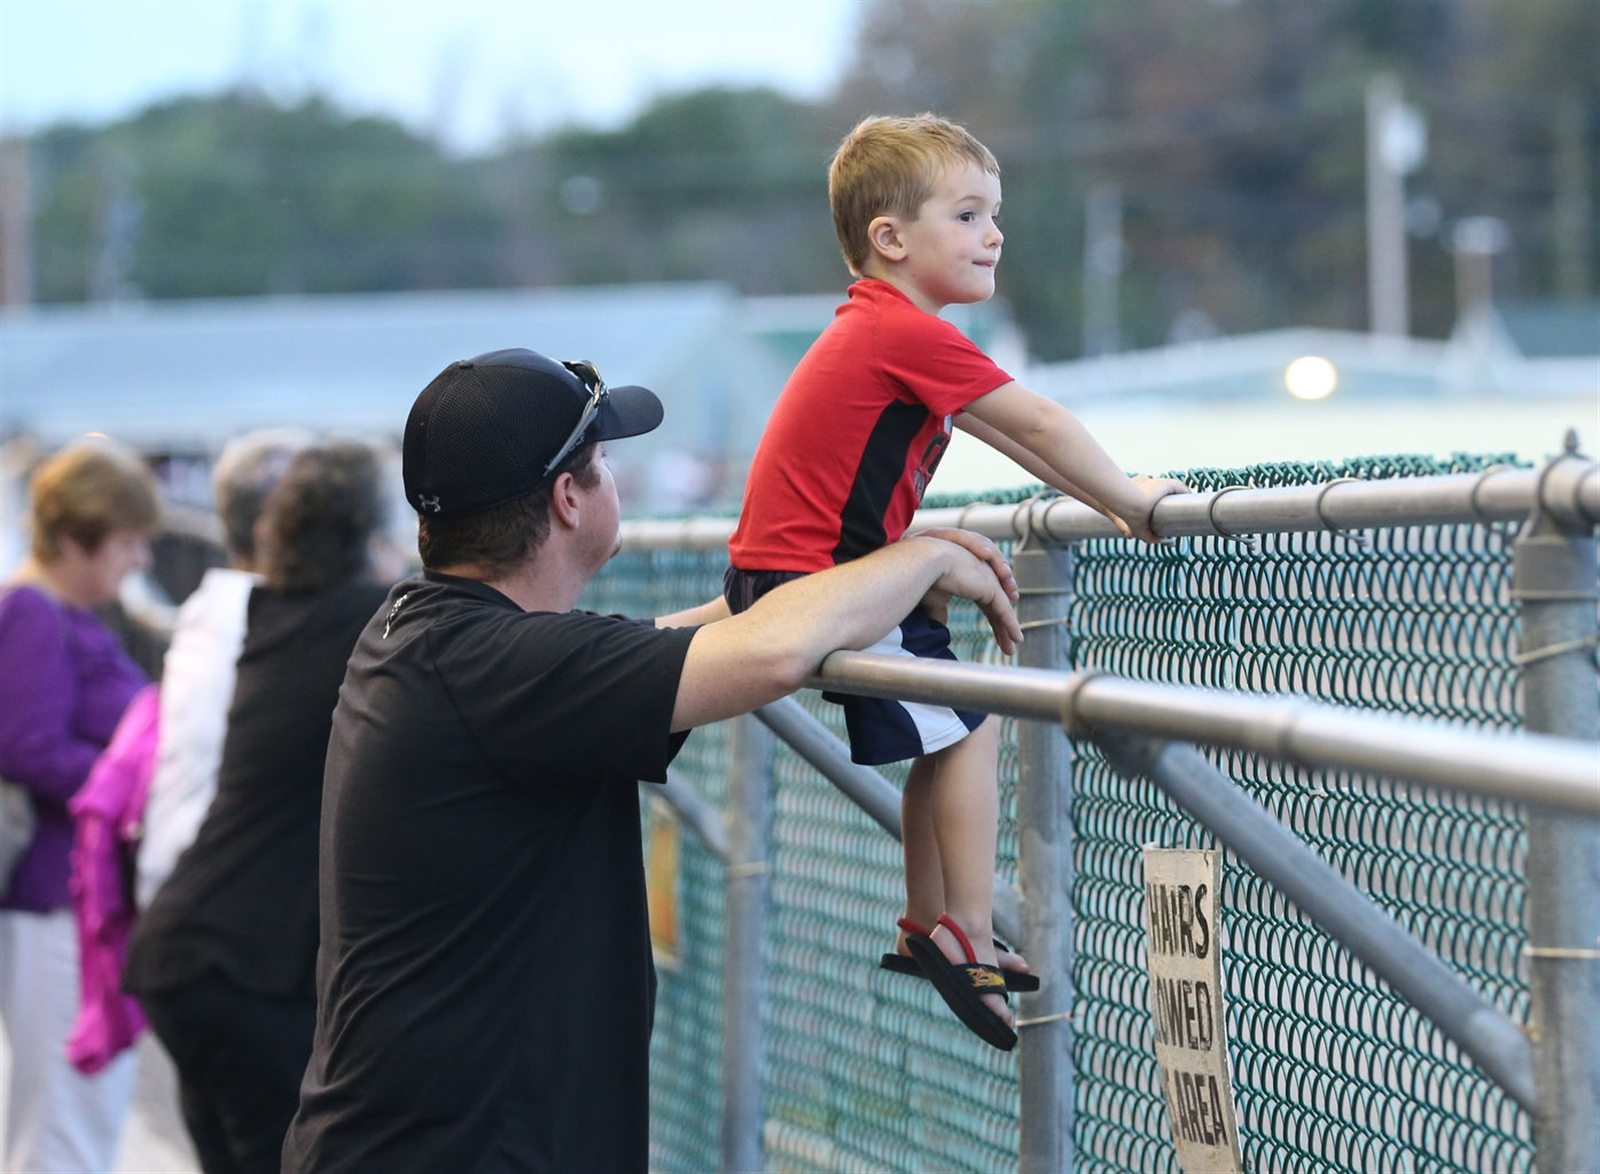 Jay Platten with his son Connor, 3, watching a race at Batavia Downs.